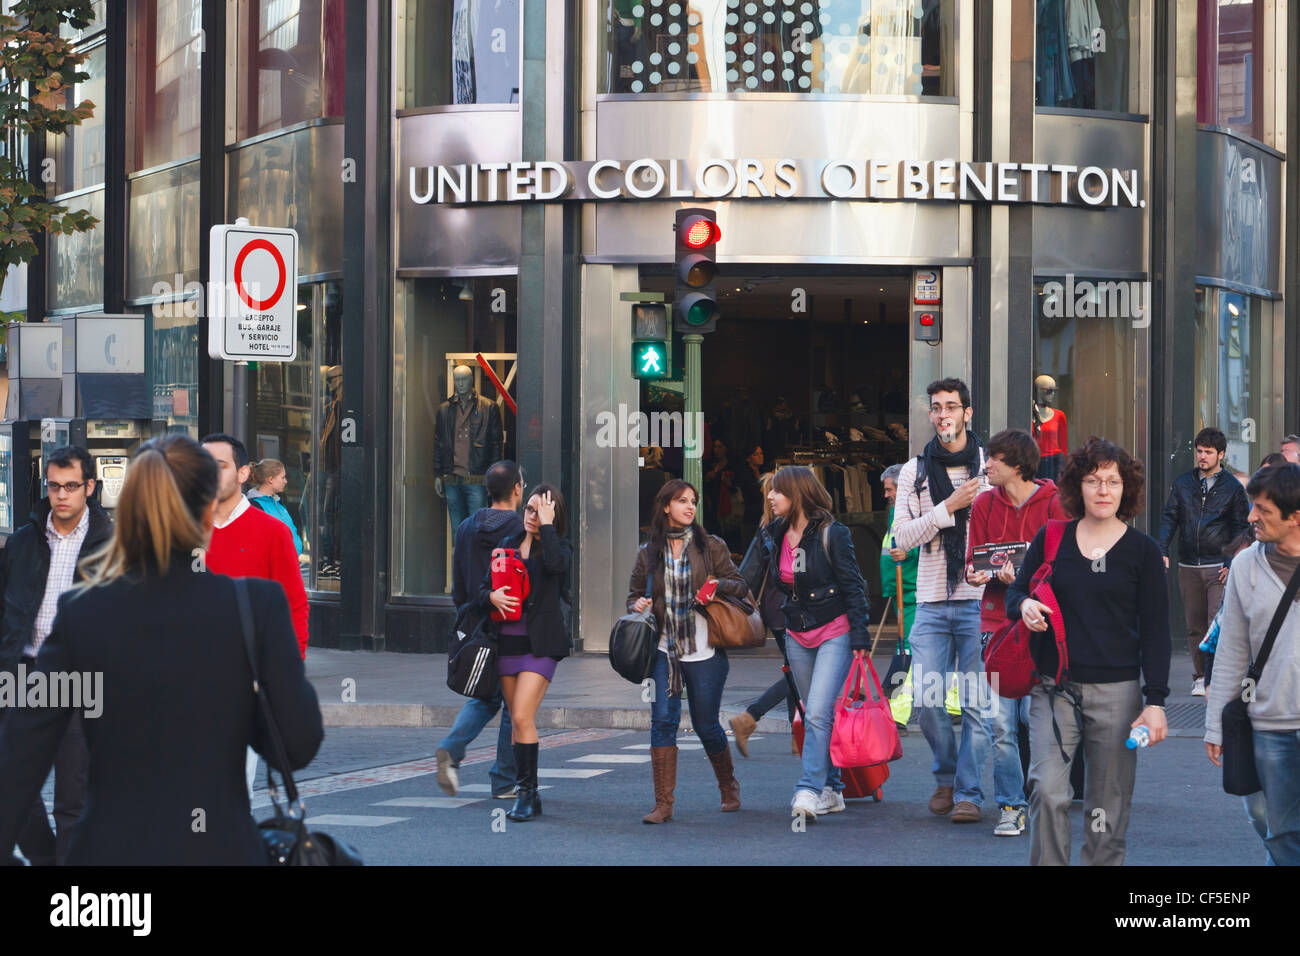 A United Colors of Benetton shop in central Madrid, Spain. - Stock Image